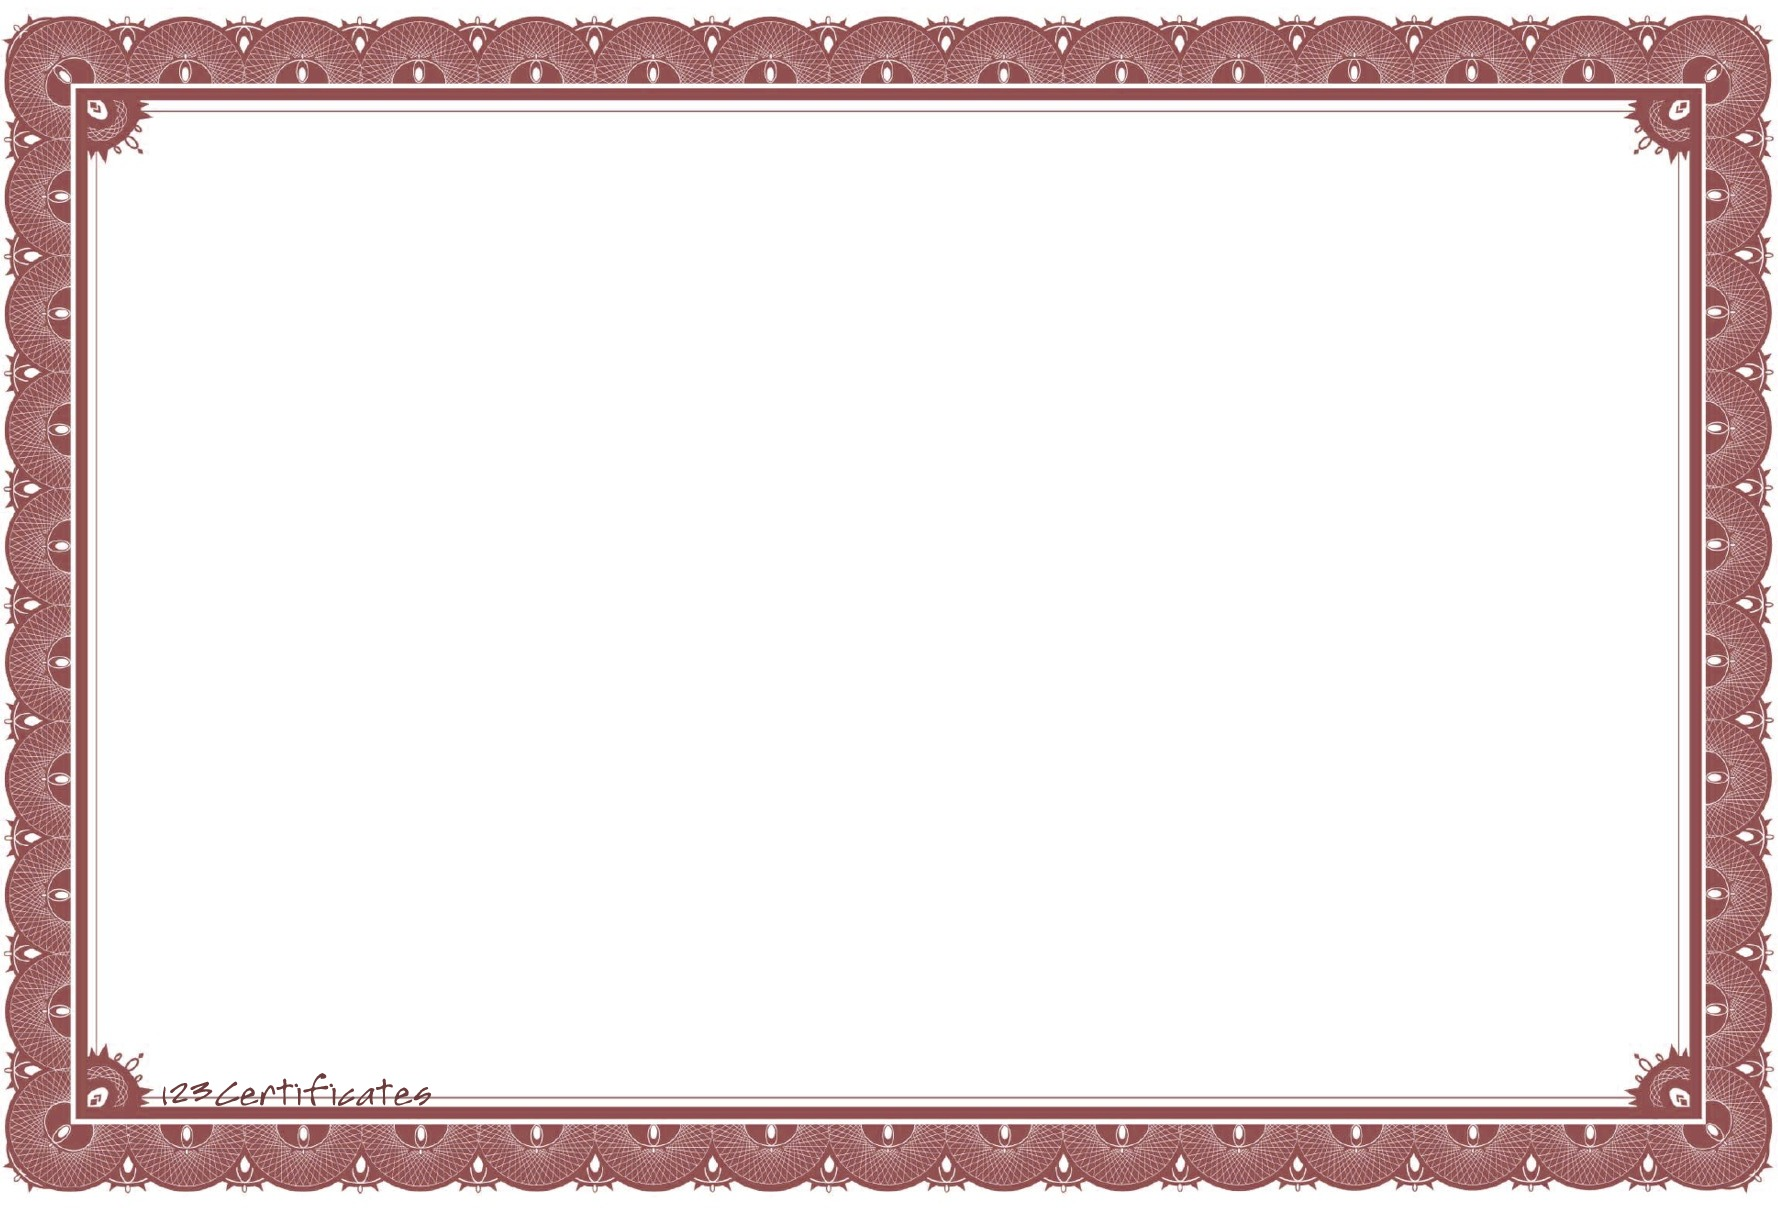 Free borders to download svg royalty free stock Free certificate borders to download, certificate templates for ... svg royalty free stock